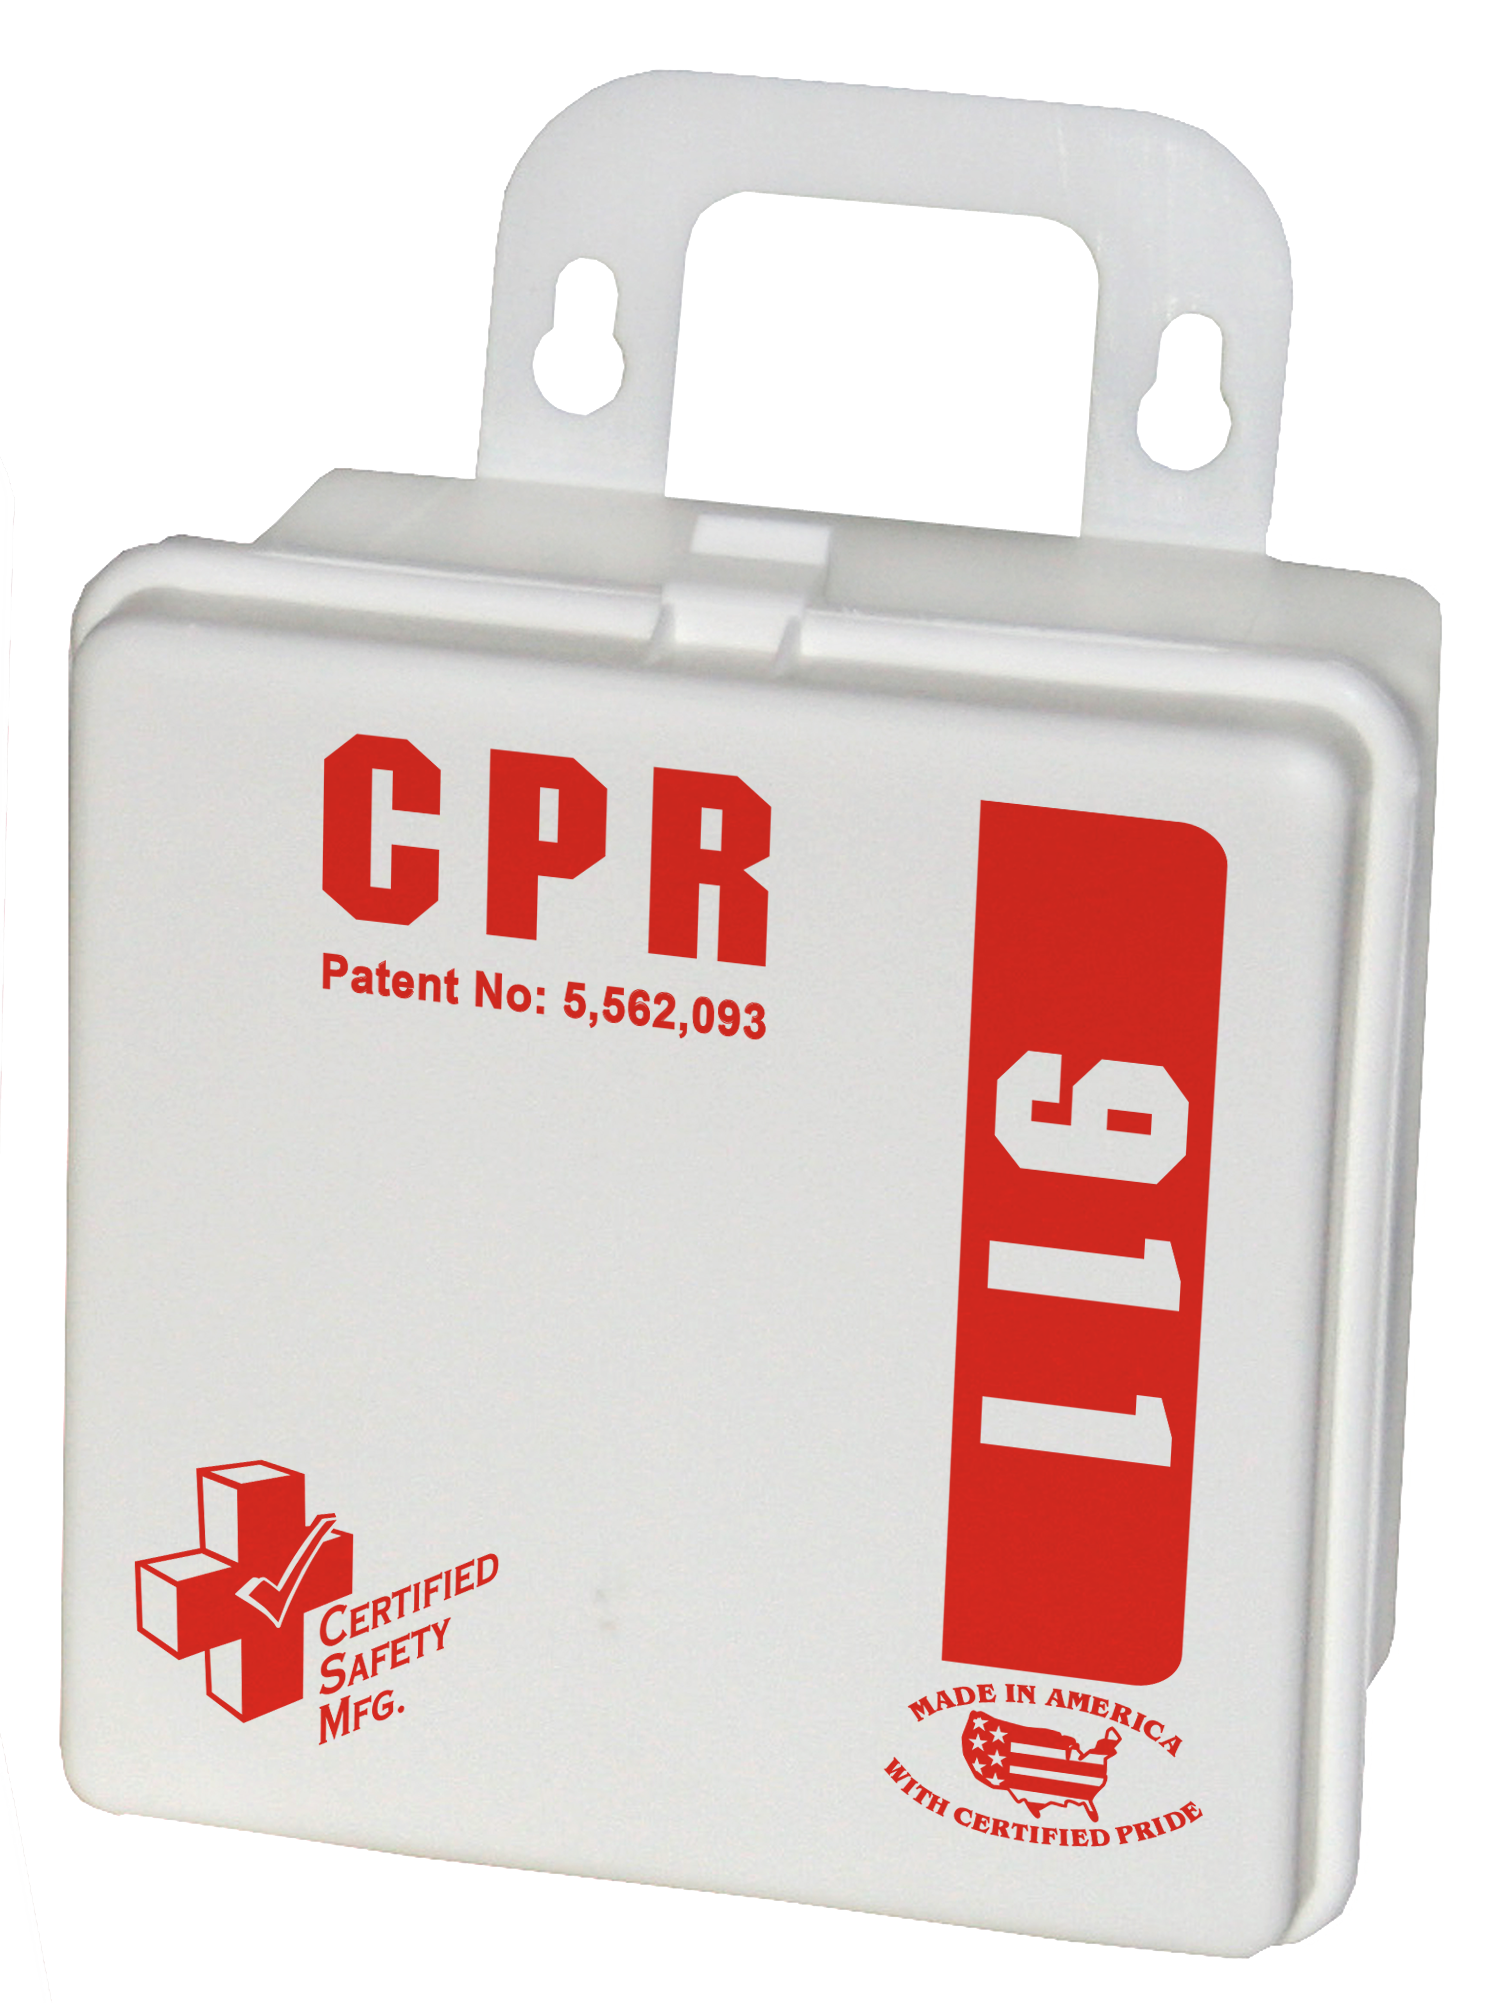 K203-000-001 --- 6PW - CPR Kit